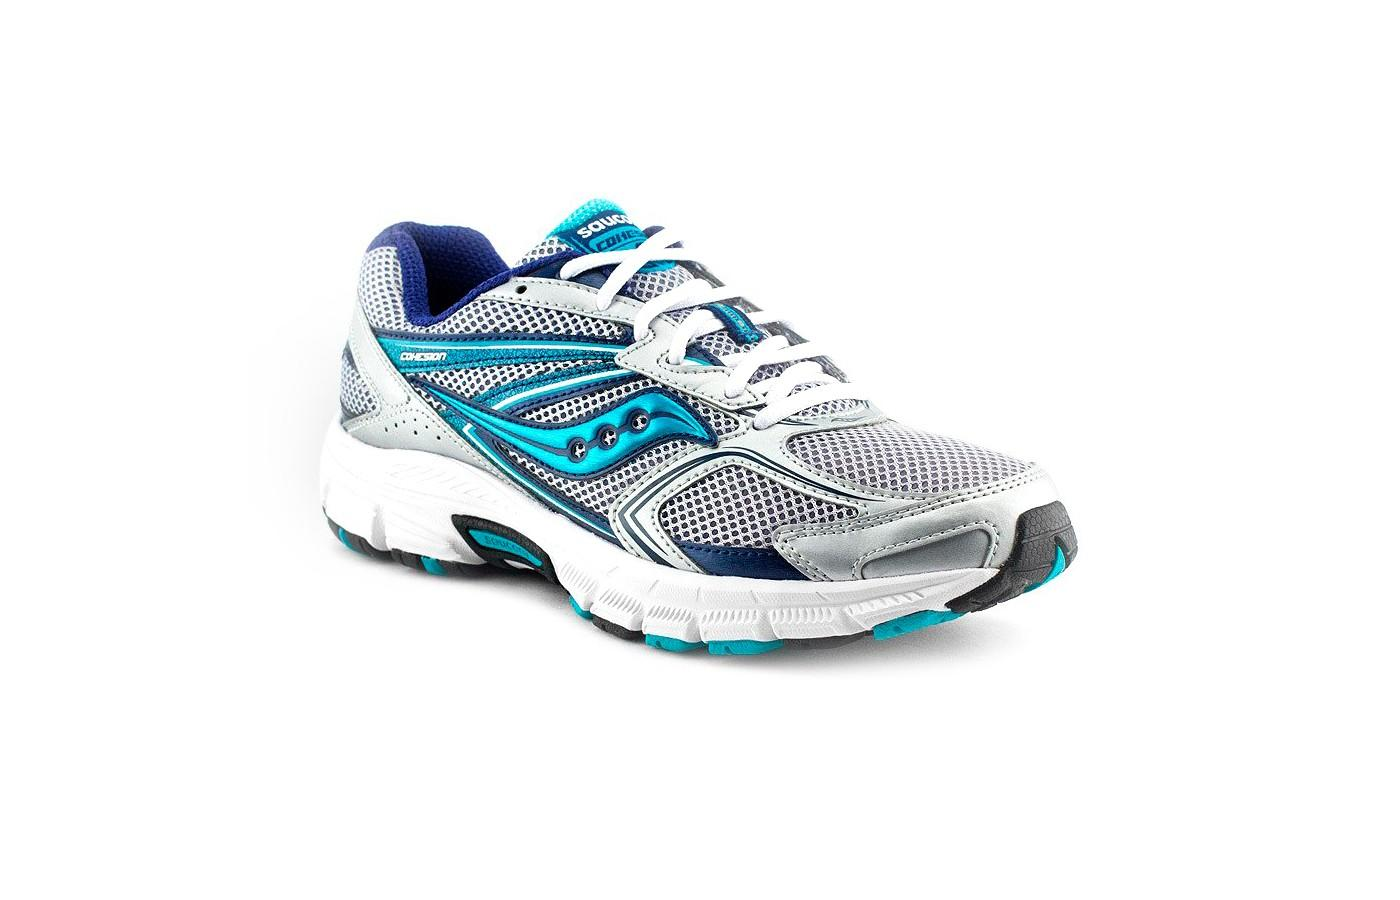 f4faebdefbf4 Buy saucony cohesion 5 womens for sale   Up to OFF67% Discounted